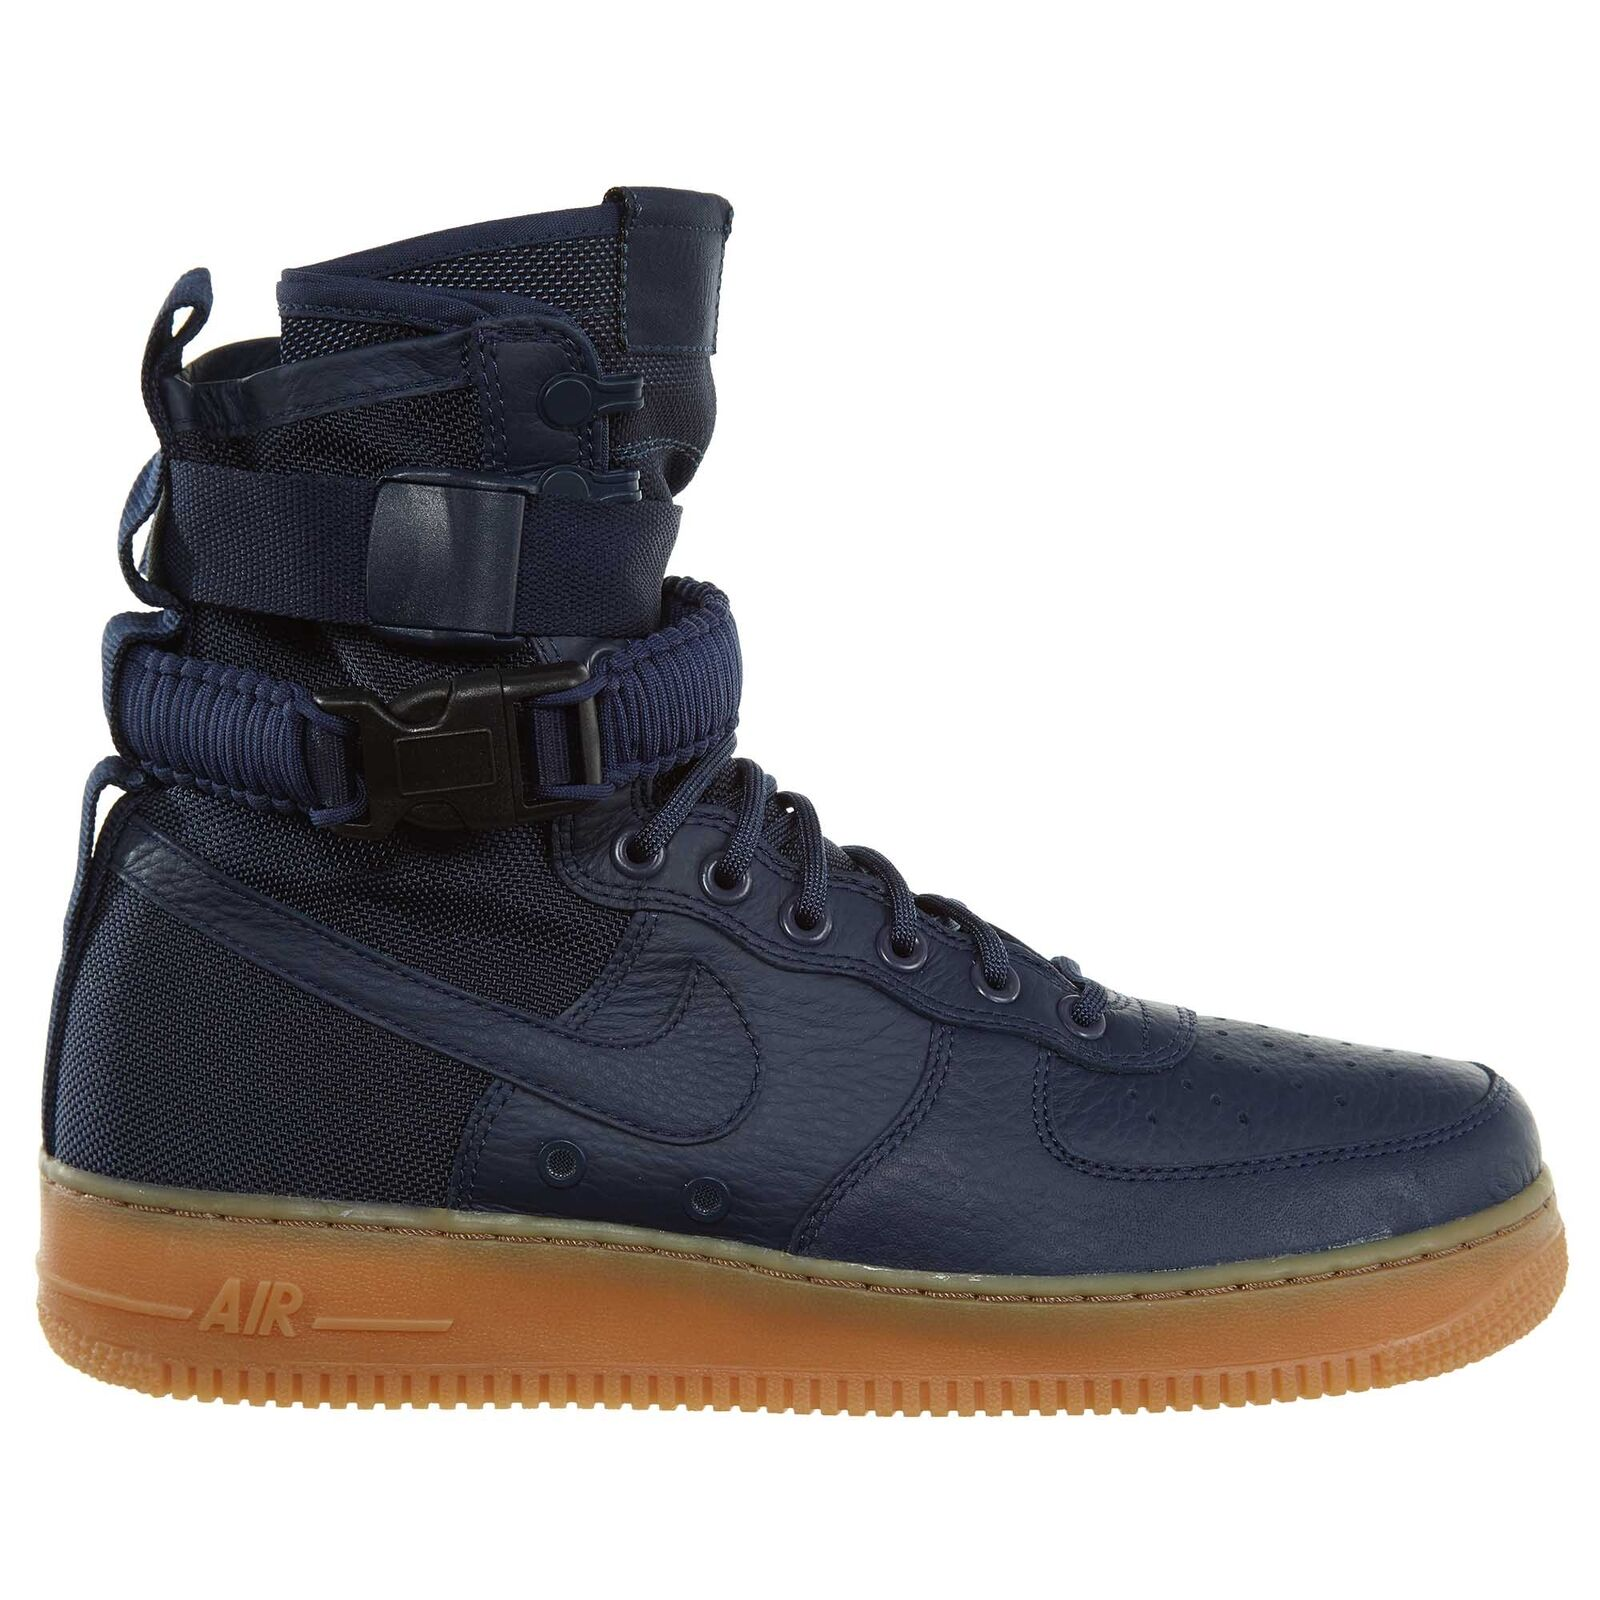 Nike SF Air Force 1 Mens 864024-400 Midnight Navy Gum Leather shoes Size 9